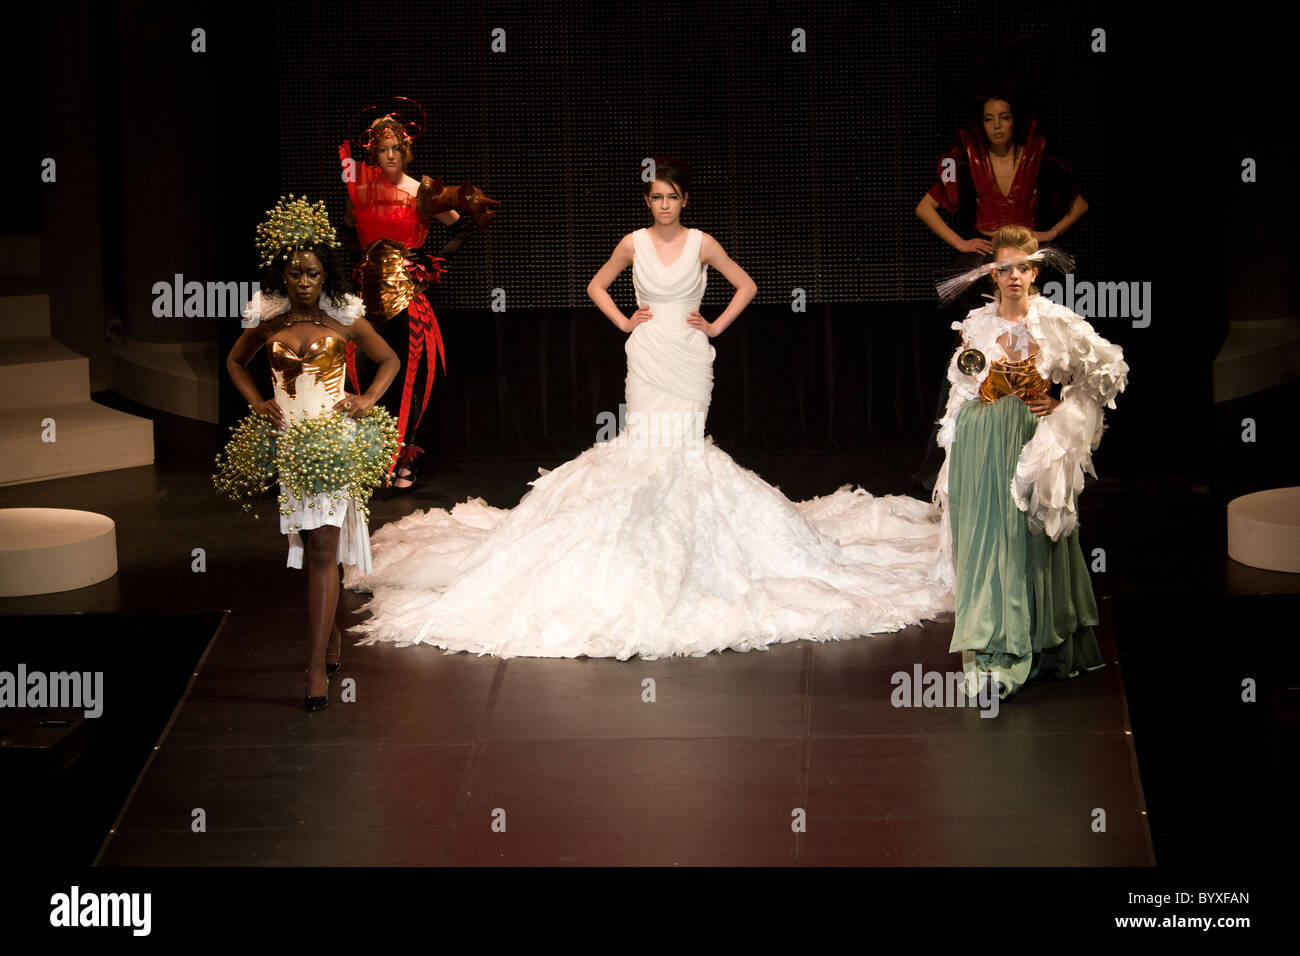 school fashion show group female models walking - Stock Image